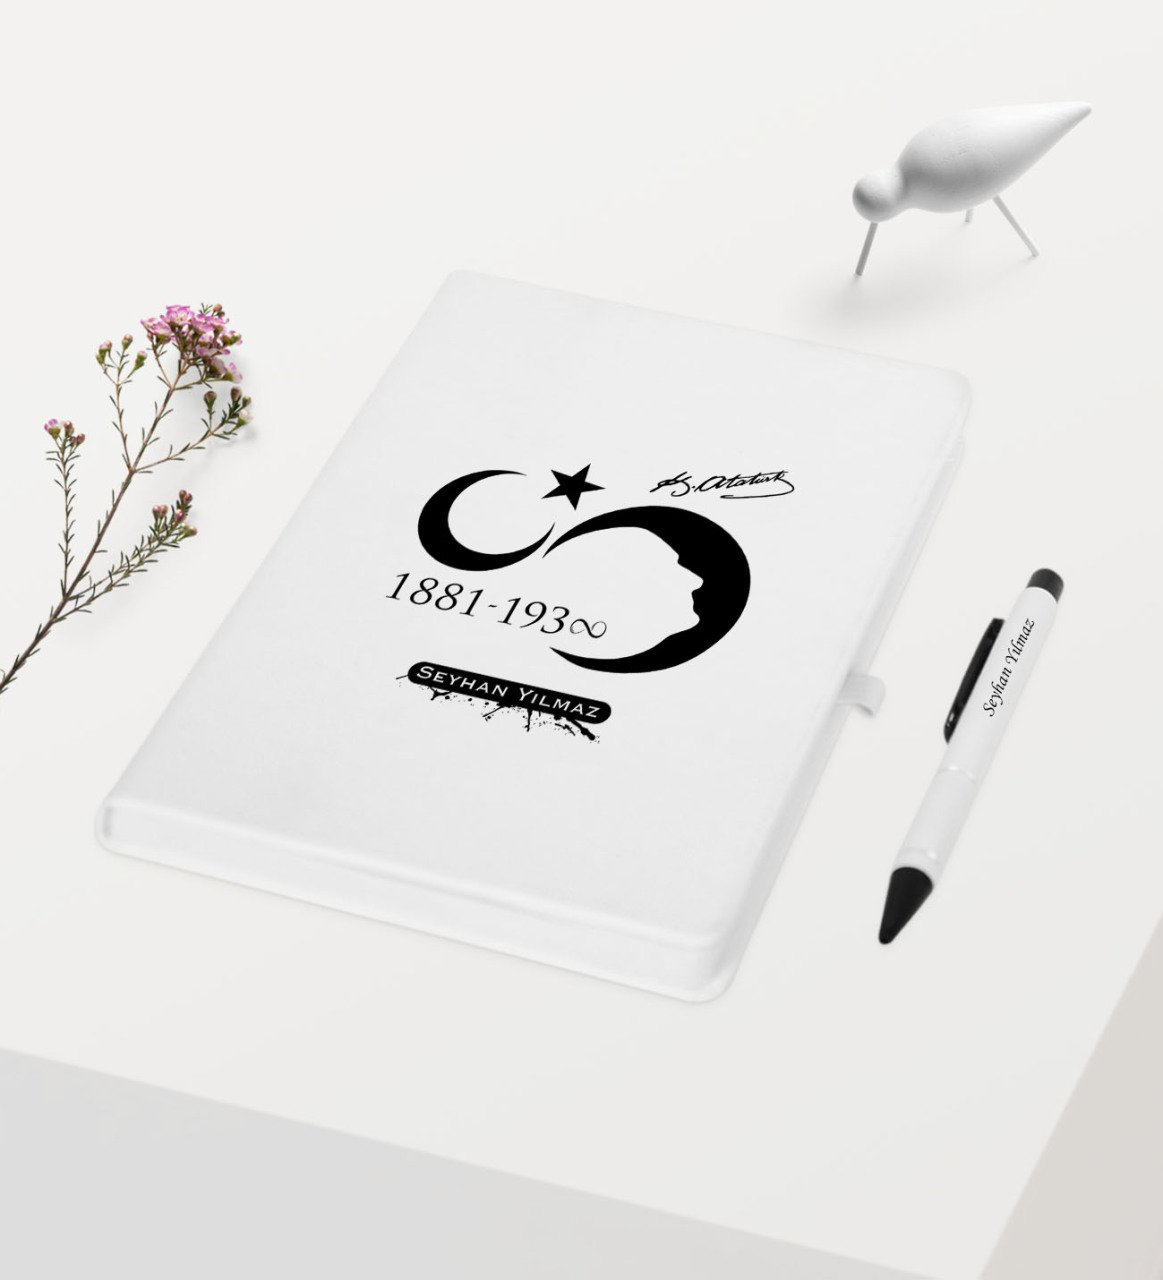 Personalized Ataturk Themed White Notebook Pen Gift Set-5